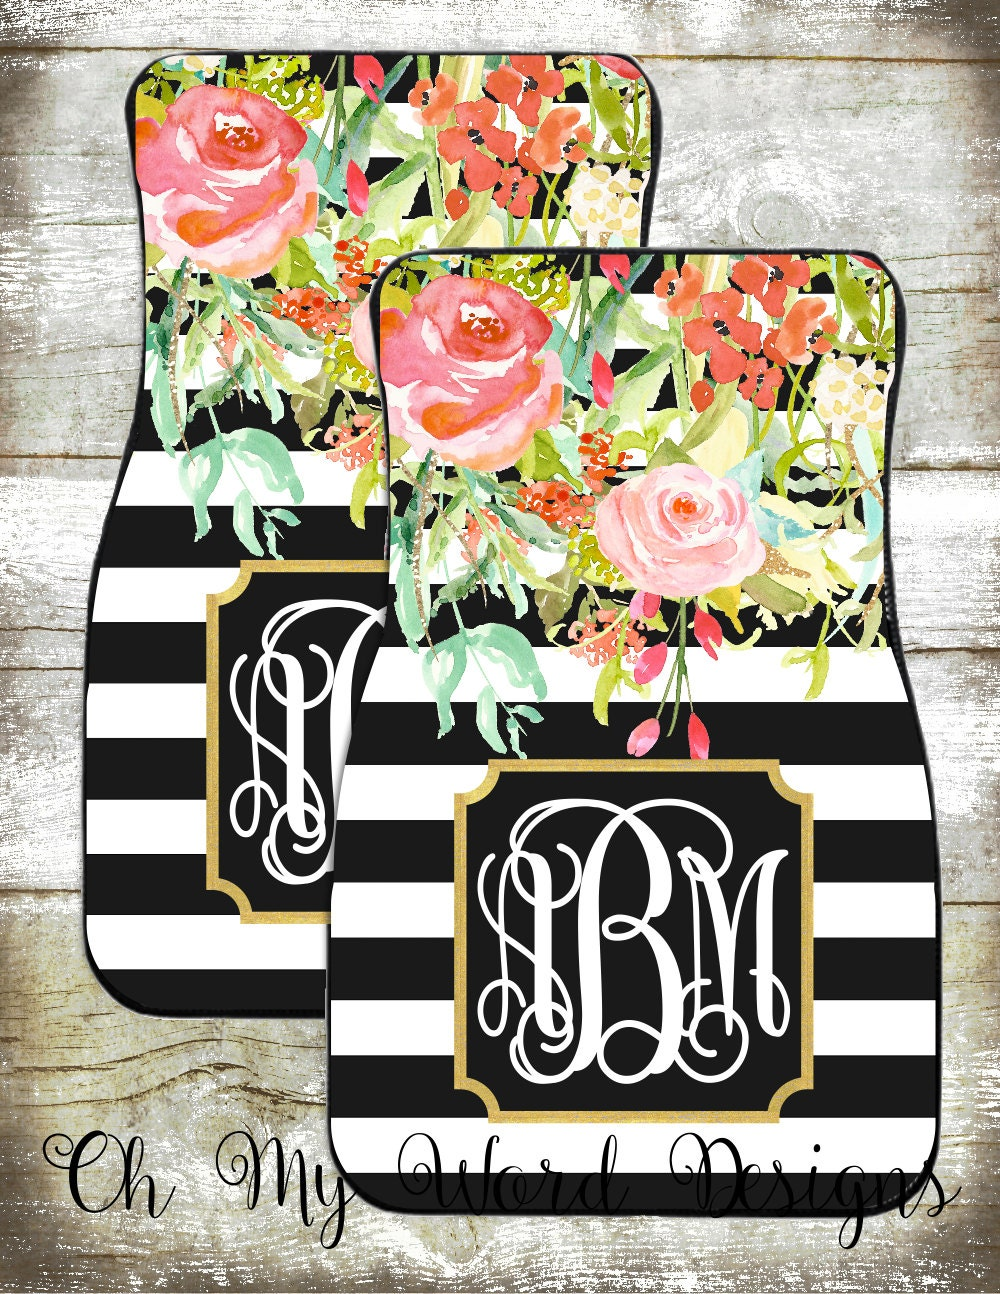 Floor mats dream cars -  Monogram Car Mats Car Accessories Car Mats Personalized Car Mats Monograms